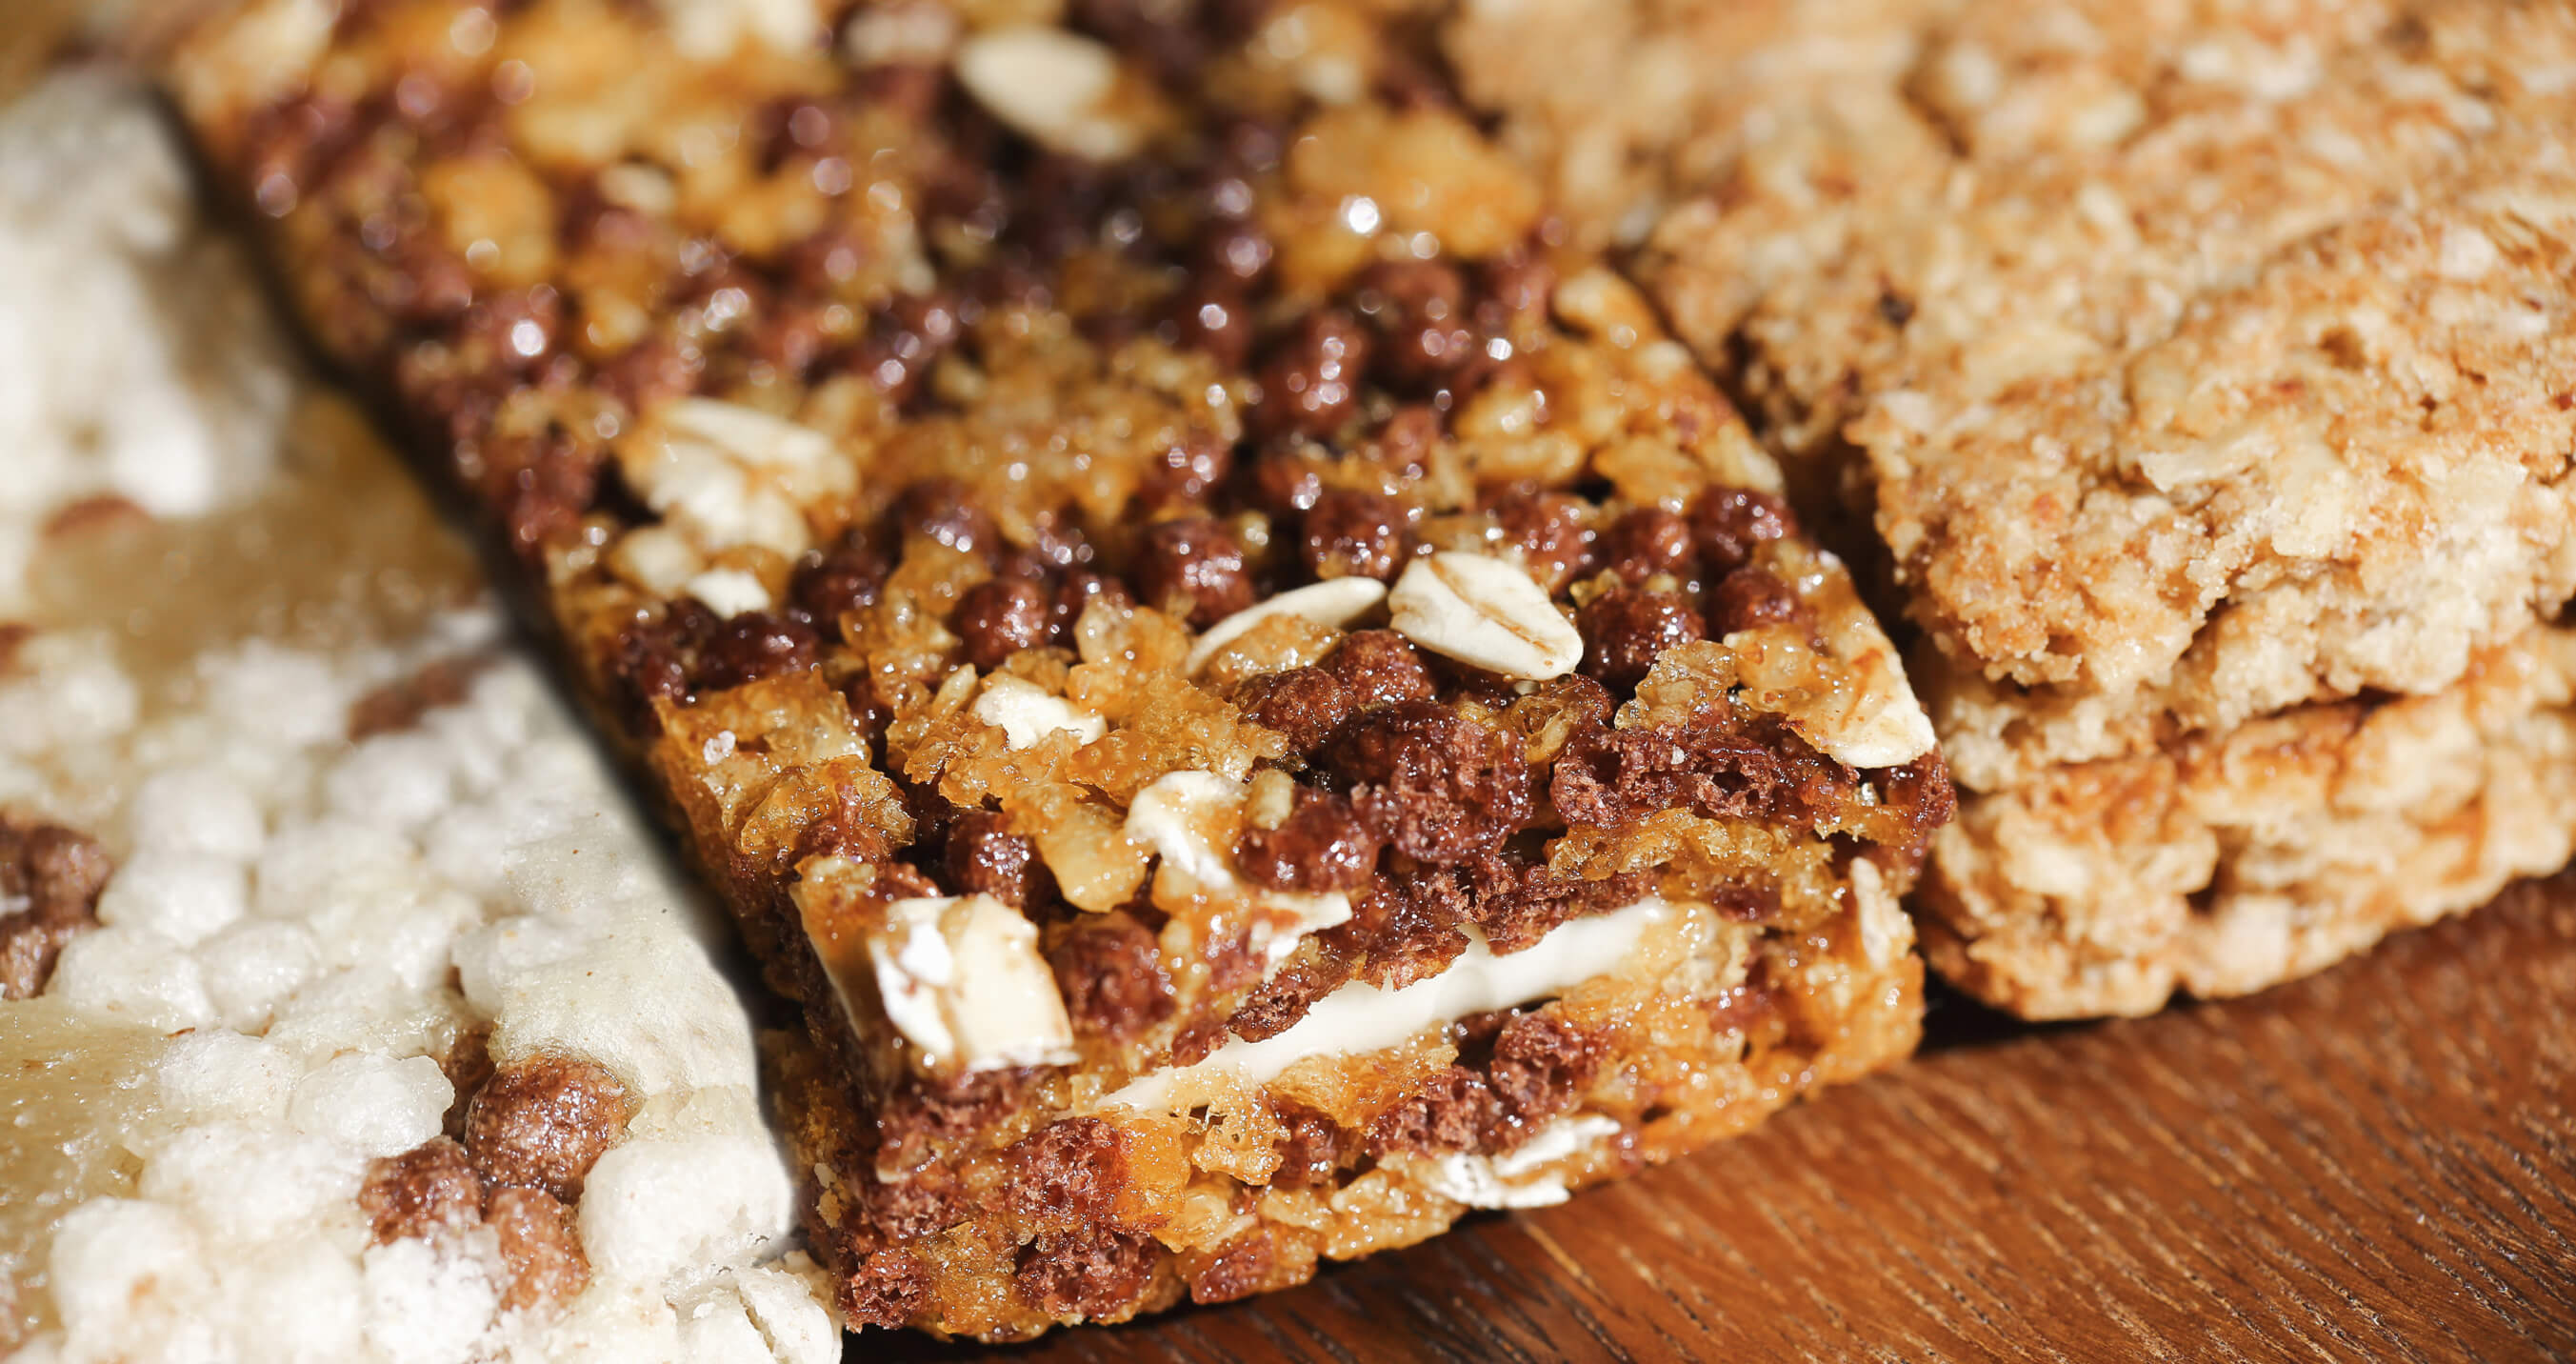 Snack bar nutrition improved with Grande WPCrisp Whey Protein Crisp